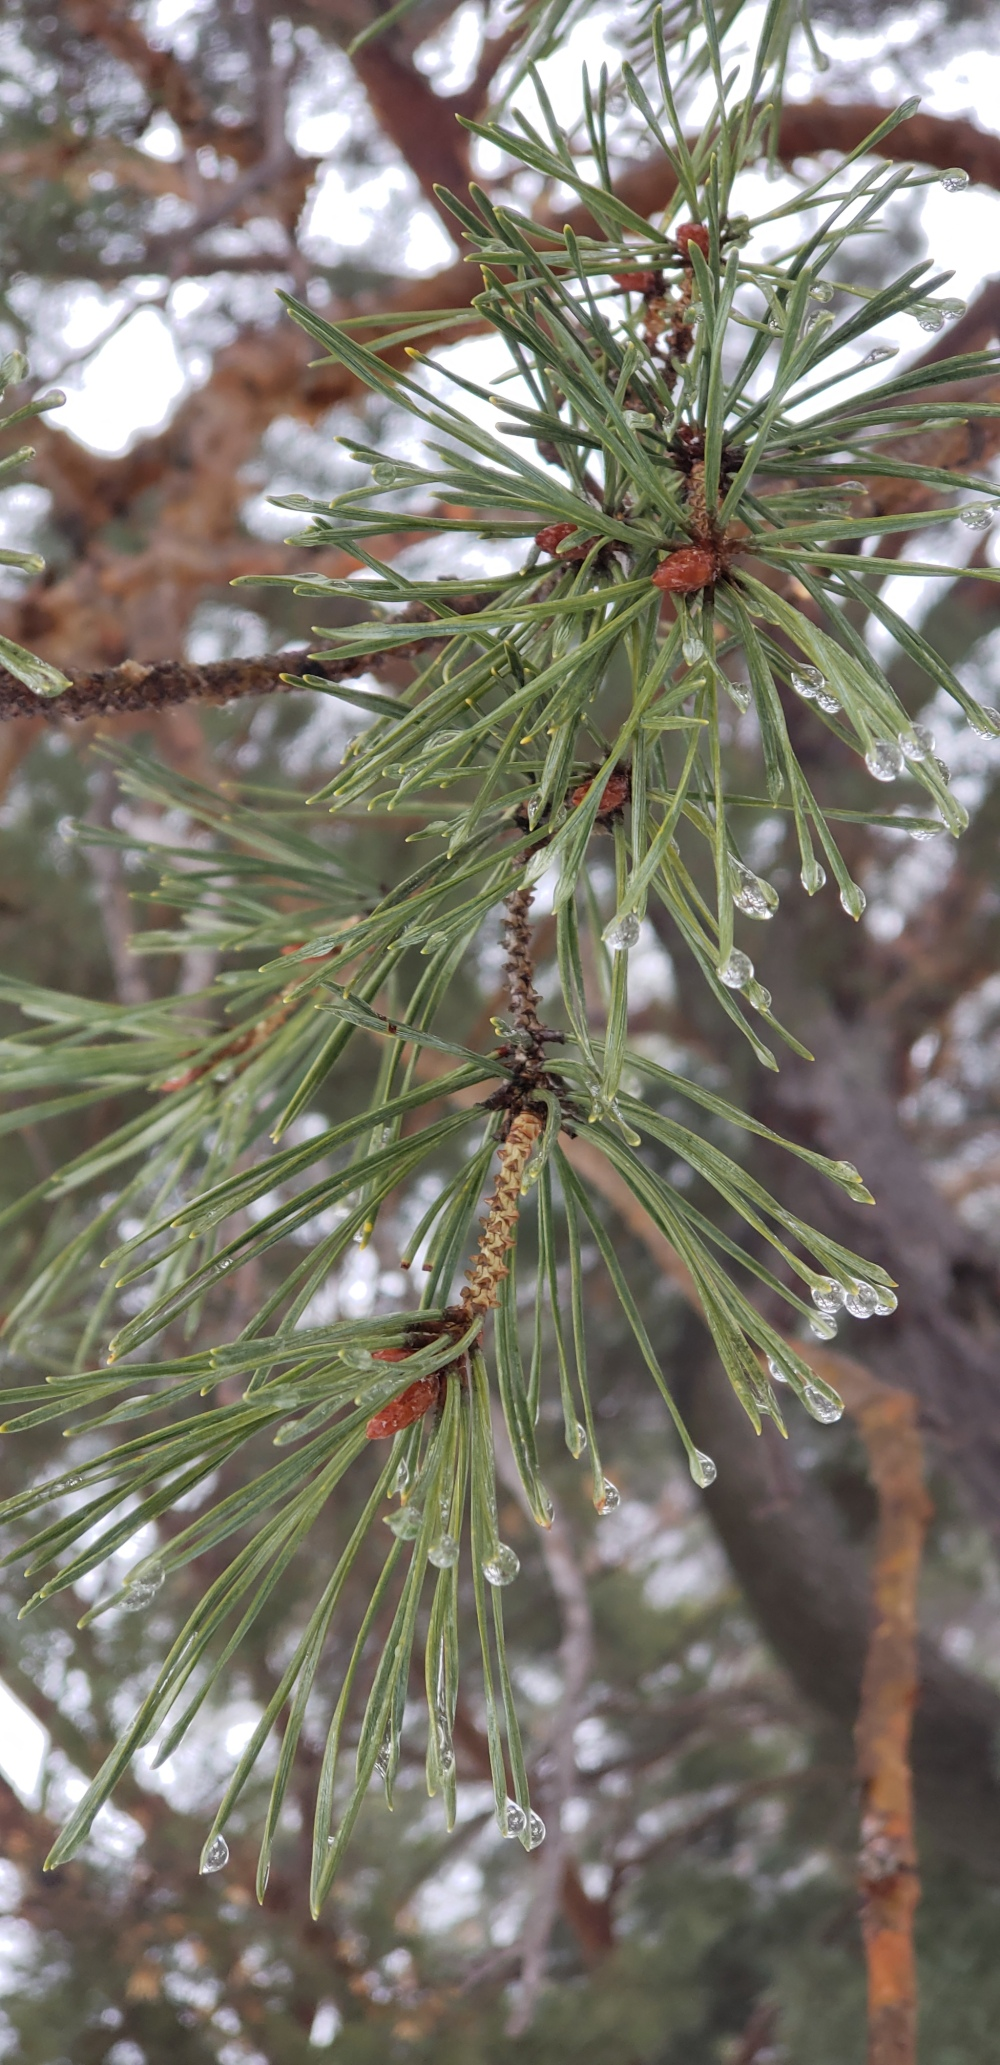 20190203_145301Droplets on pines